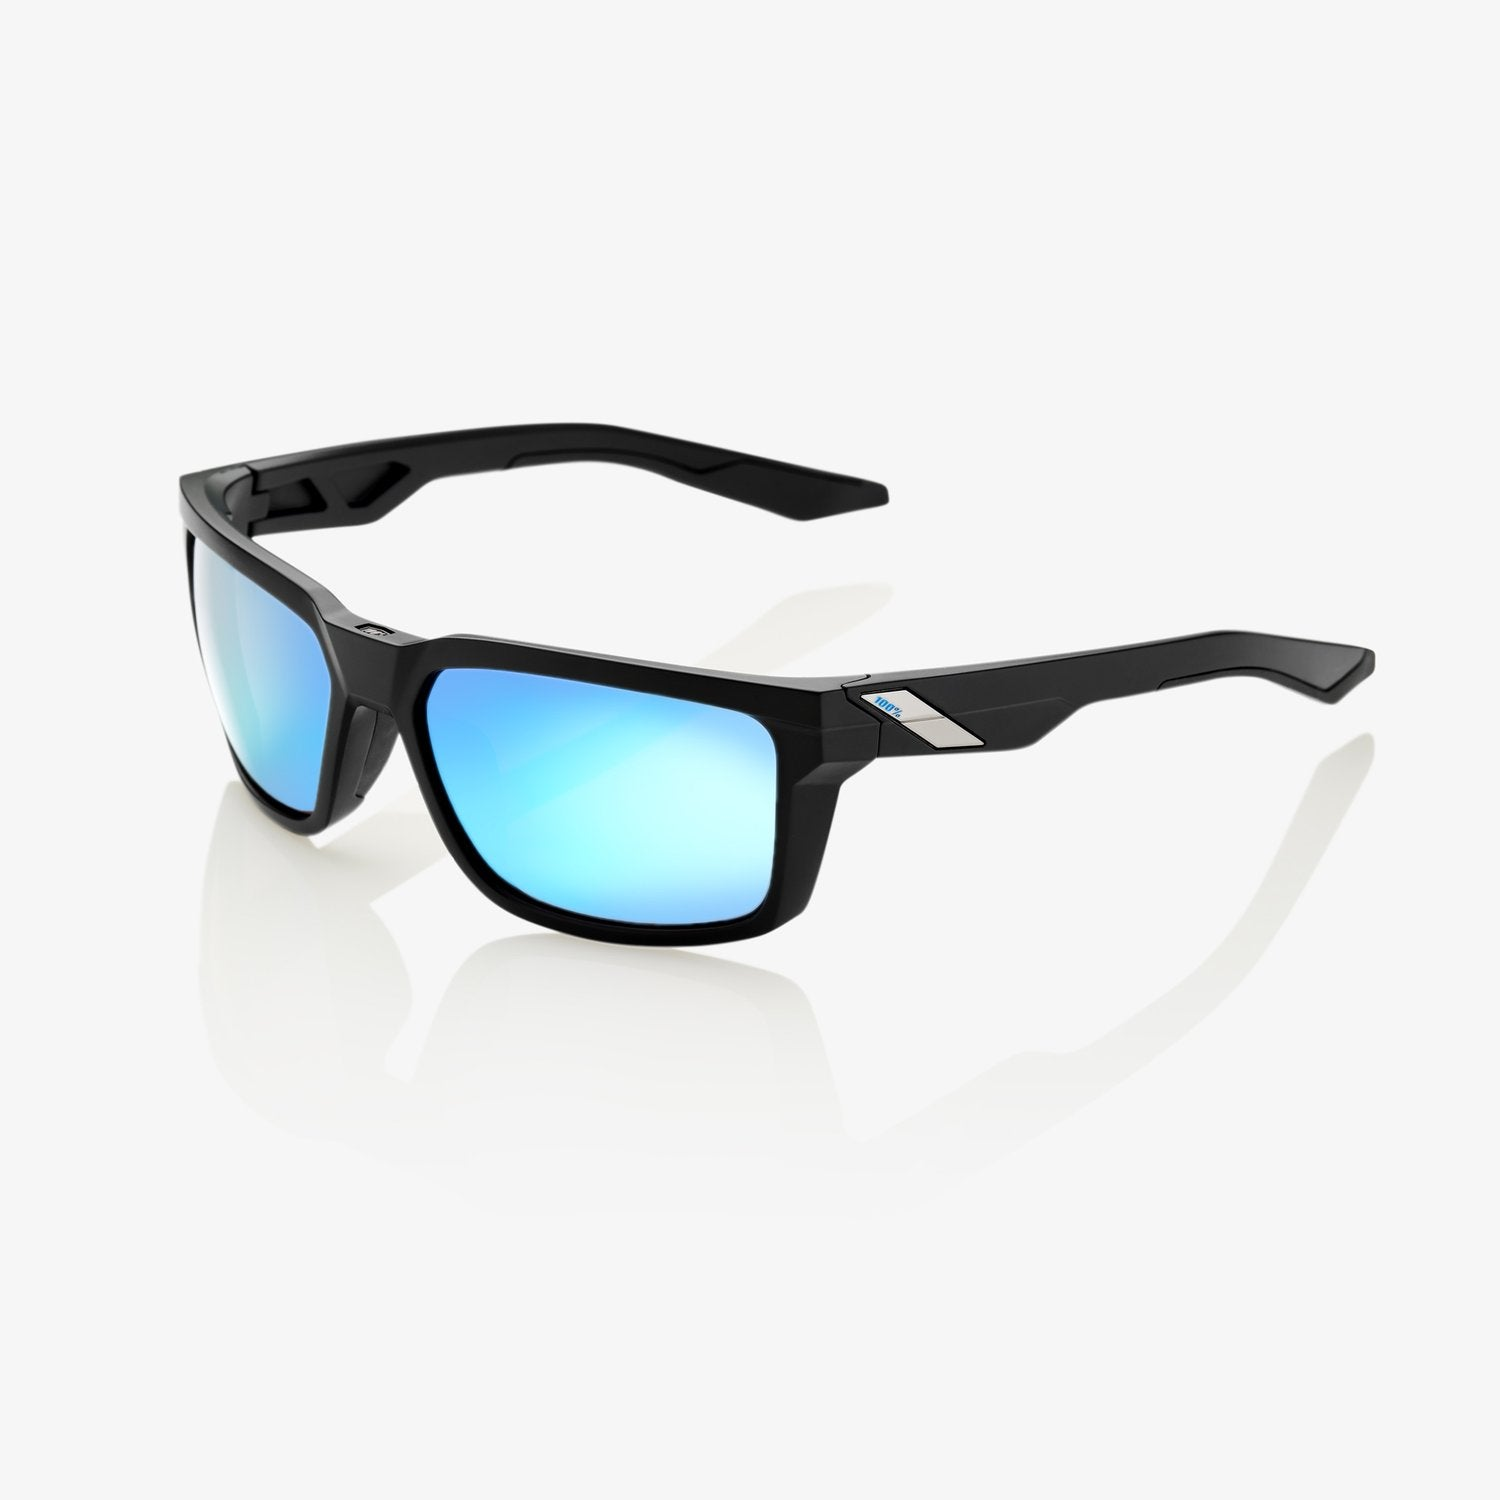 100 Percent - Daze Matte Black Sunglasses / HiPER Blue Multilayer Mirror Lenses